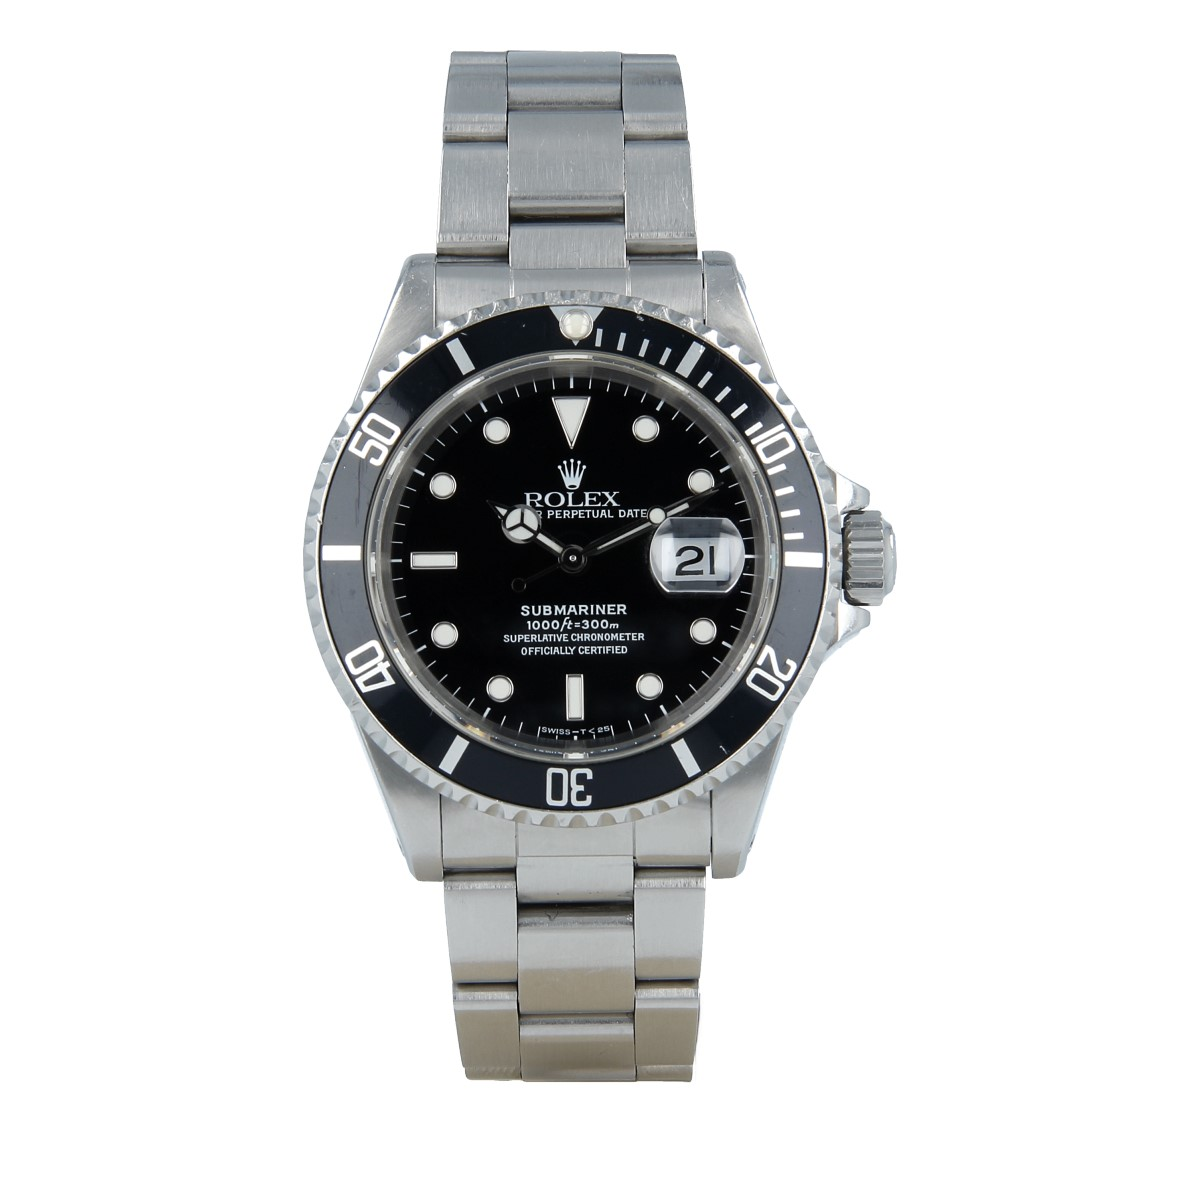 Rolex Submariner Date 16610 Tritium *Full Set* Never Polished | Buy second-hand Rolex watch